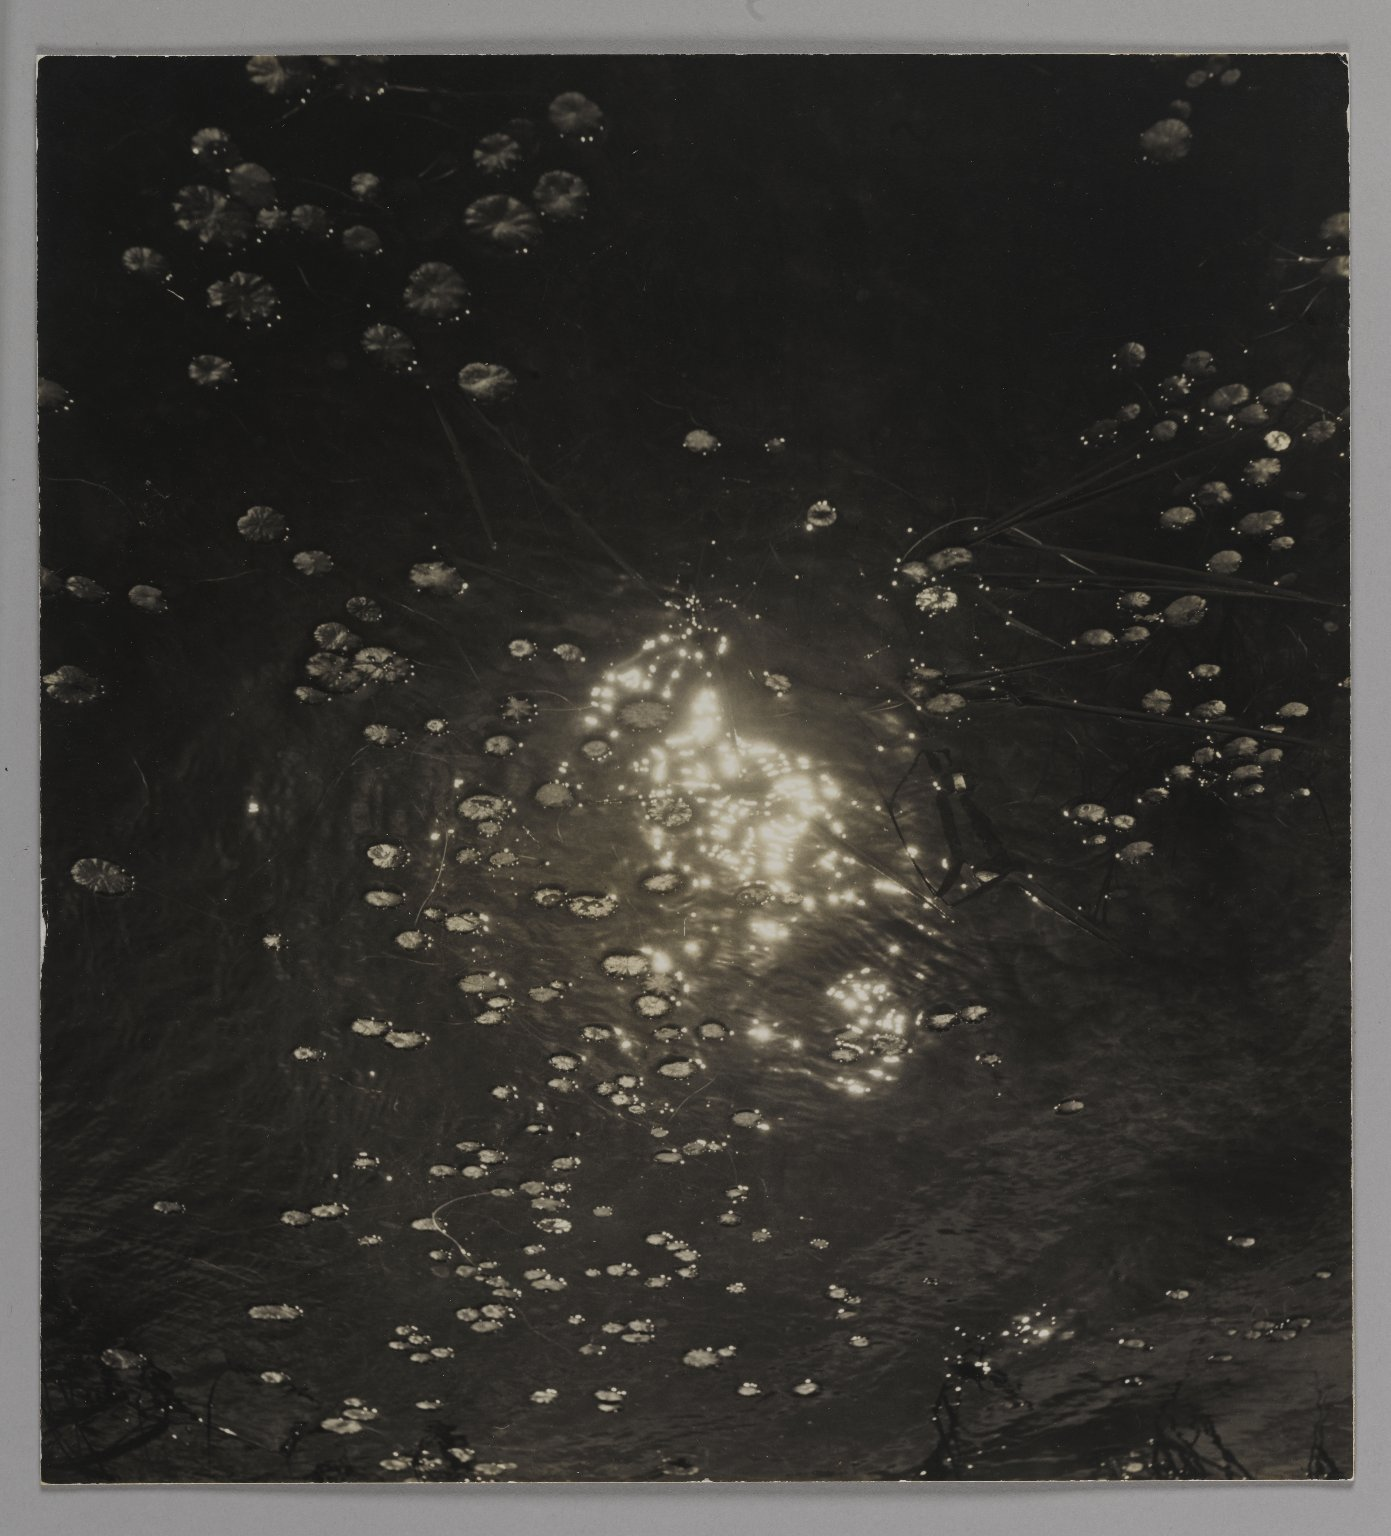 Brooklyn Museum: [Untitled] (Lily Pads on Pond)